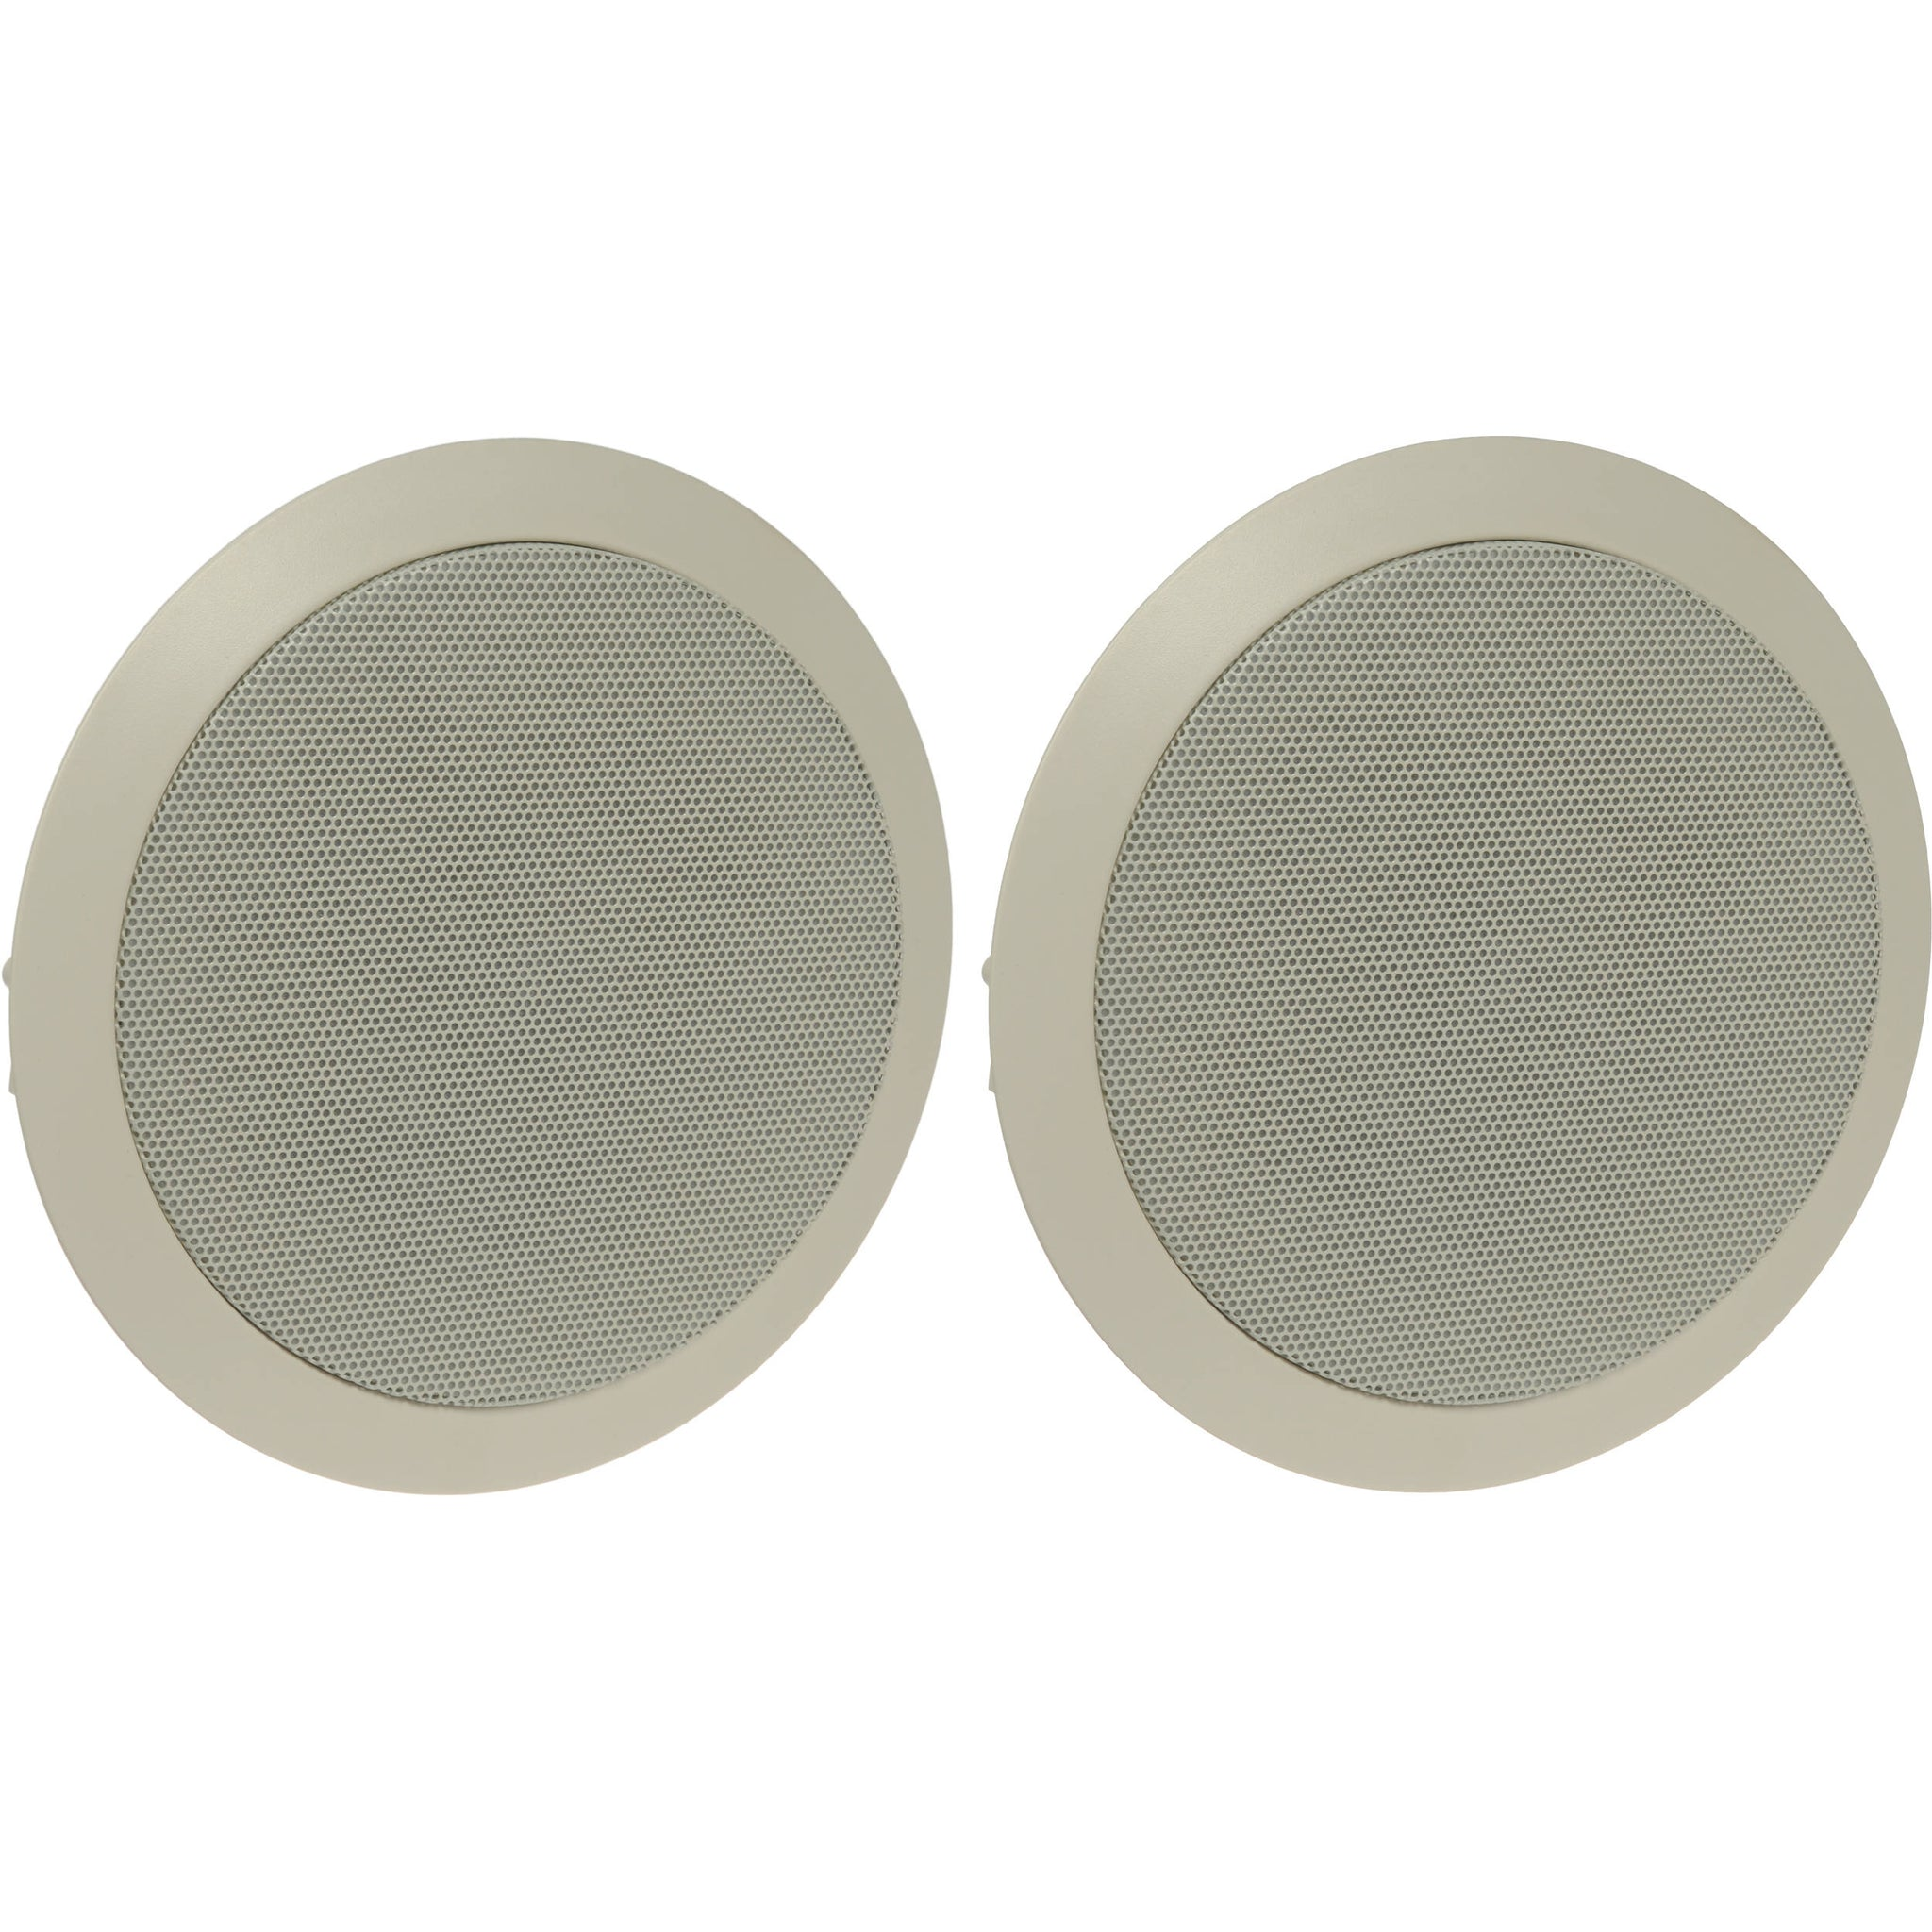 pro jbl collections series commercial media speakers inch ceiling speaker audio dale